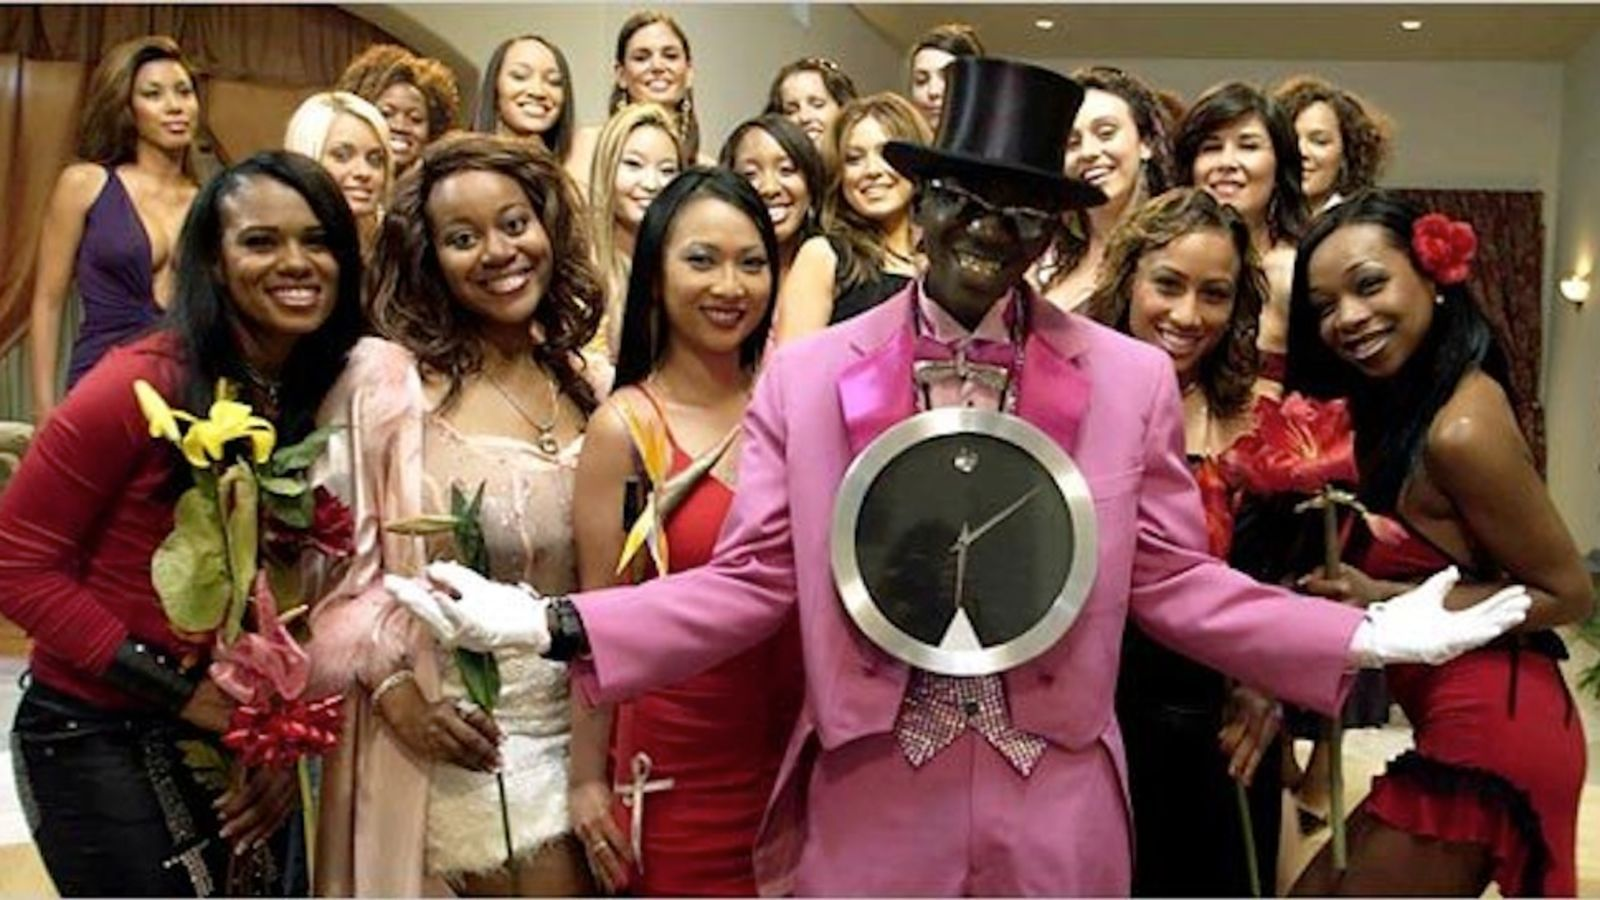 'Flavor of Love' / 'I Love New York' When was it on? Flavor of Love ran for three seasons from 2006 - 2008 on Vh1; I Love New York ran for two seasons from 2007-2008 on Vh1.